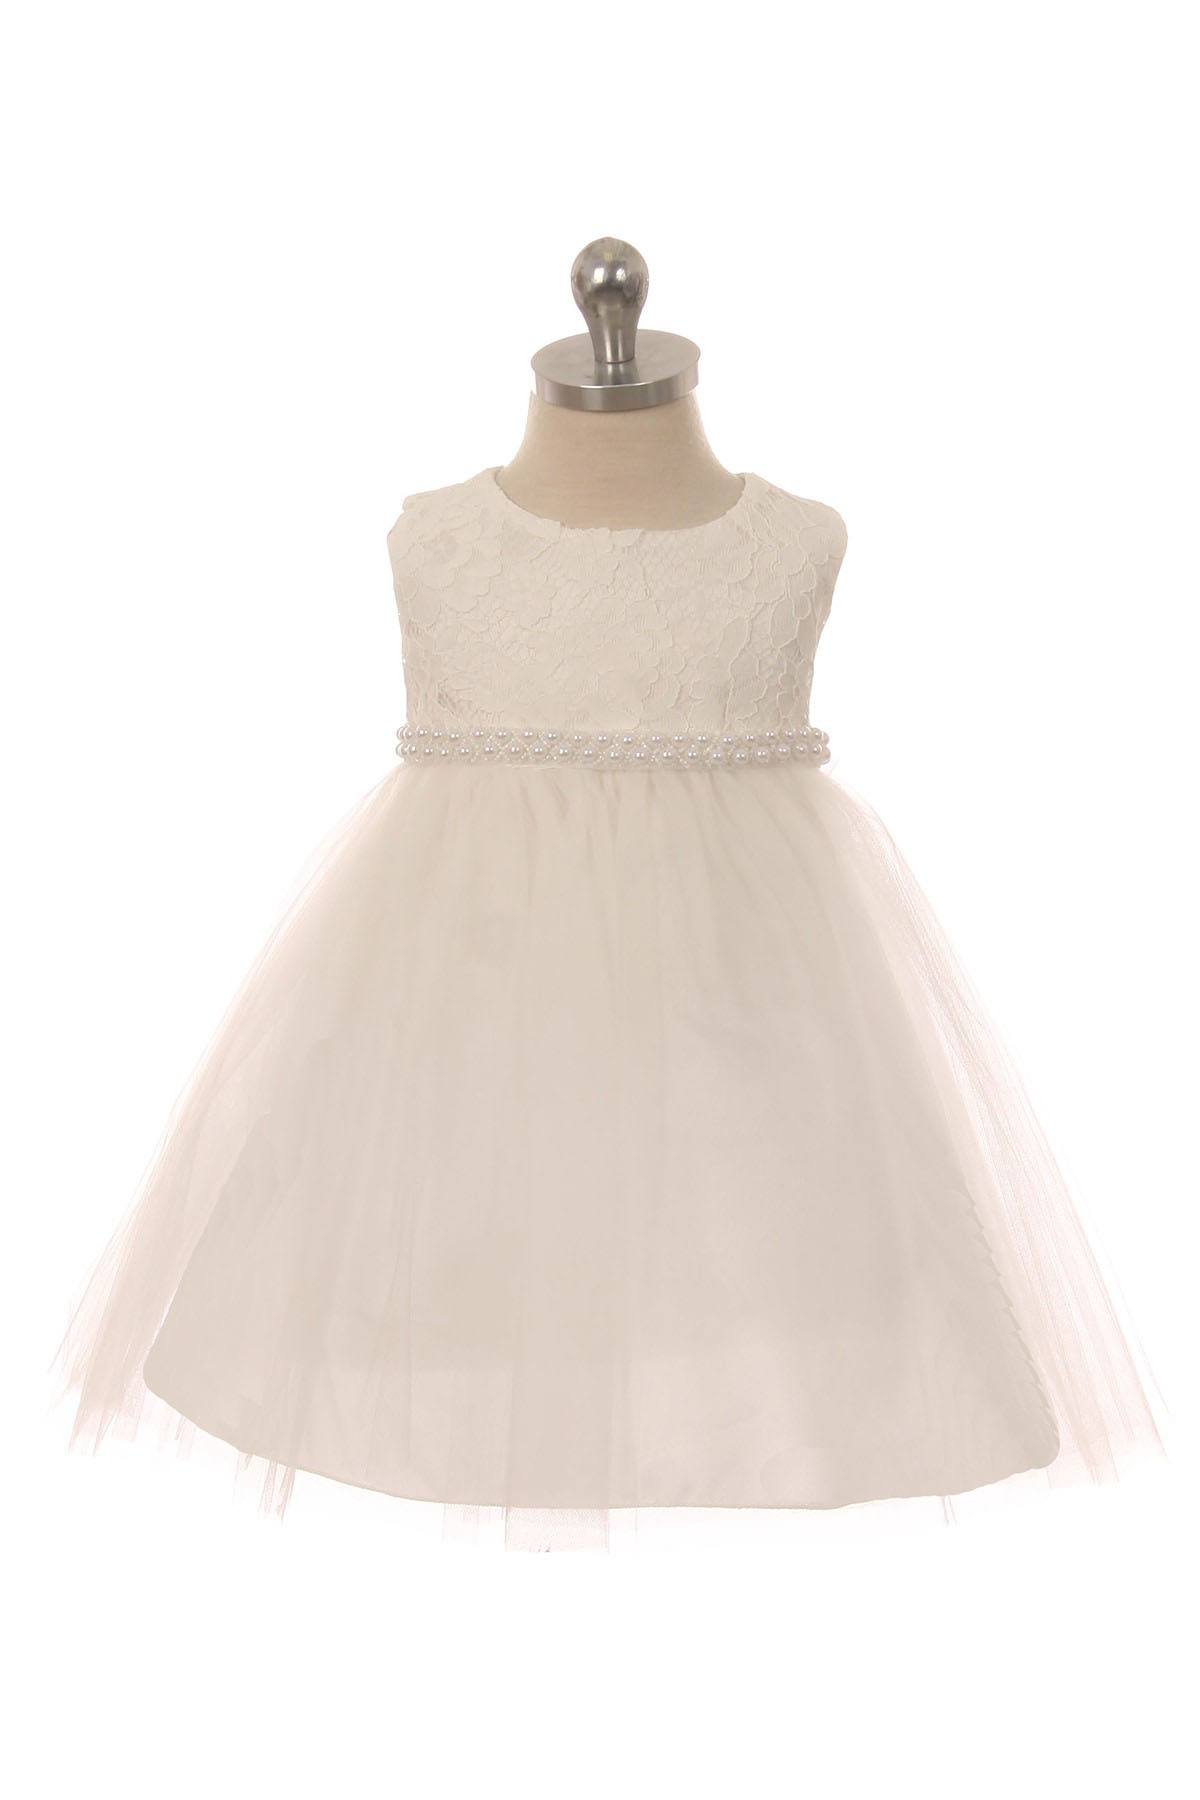 3ea9733174a8 Anastasia Baby Girls Lace Top Dress - Off White - Pearl Trim ...